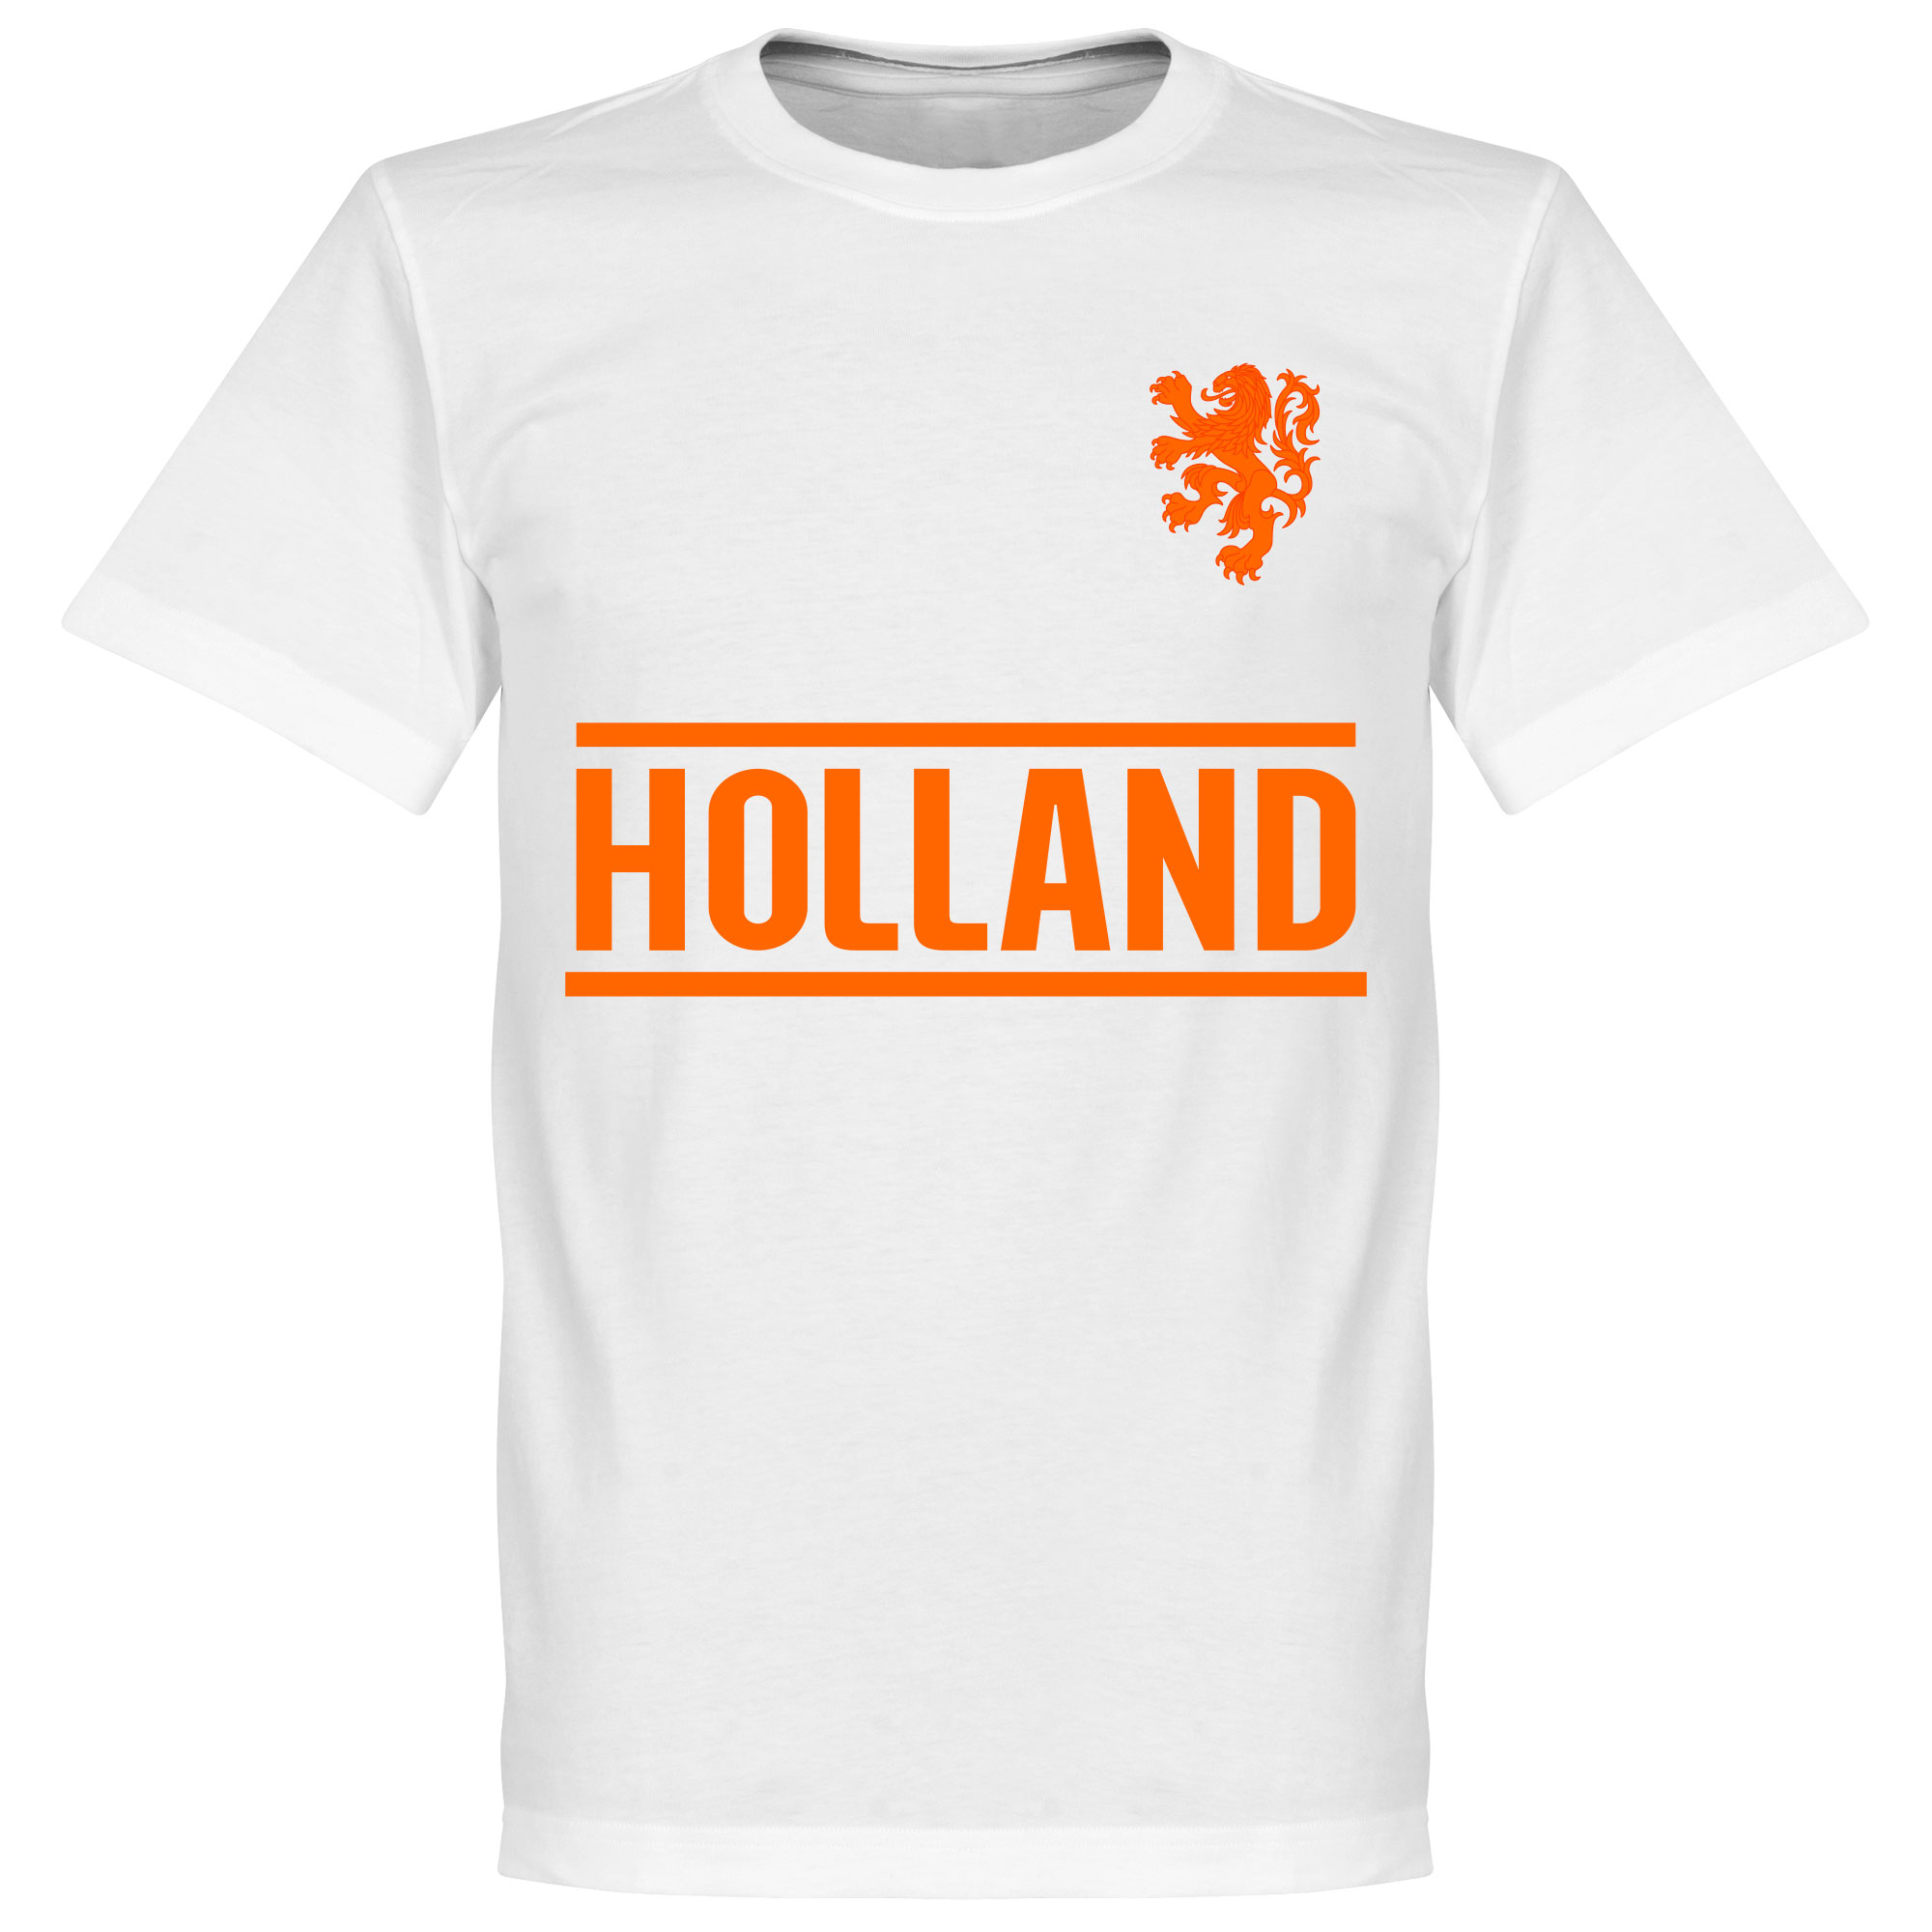 Holland Team Tee - White - XL